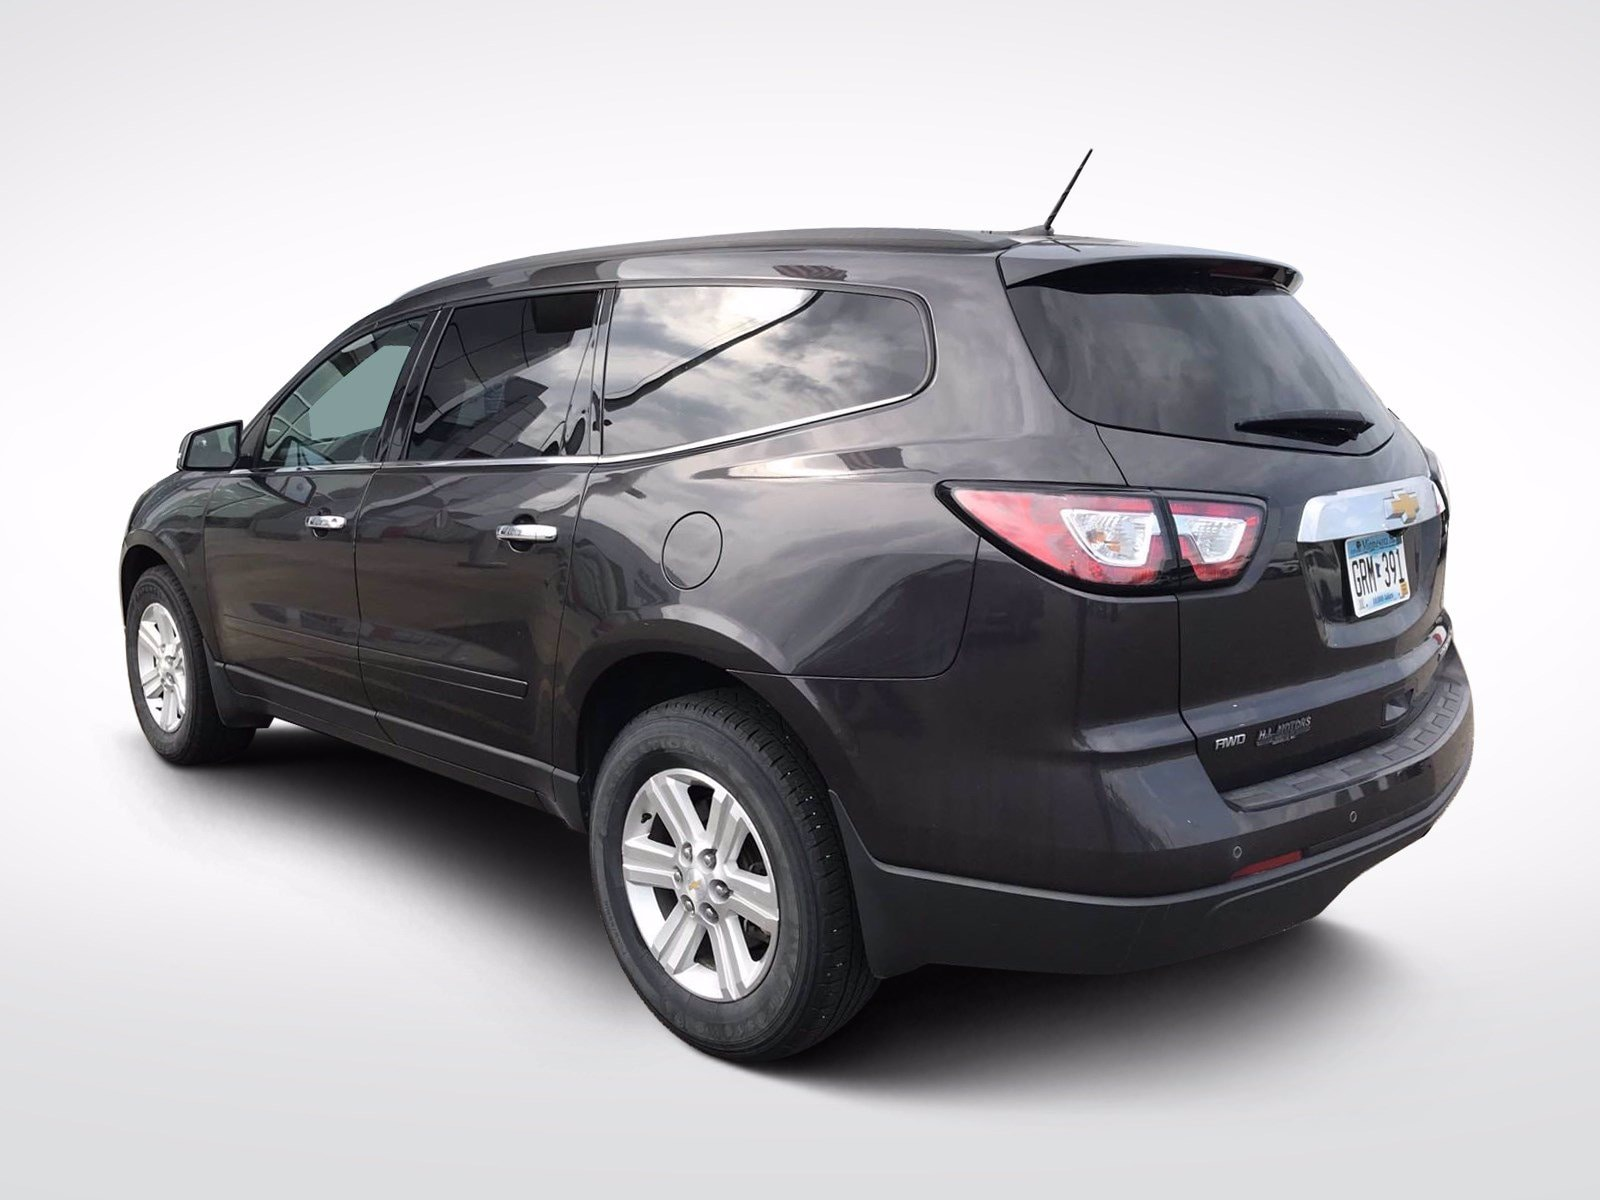 Used 2014 Chevrolet Traverse 2LT with VIN 1GNKVHKD9EJ262391 for sale in Willmar, Minnesota